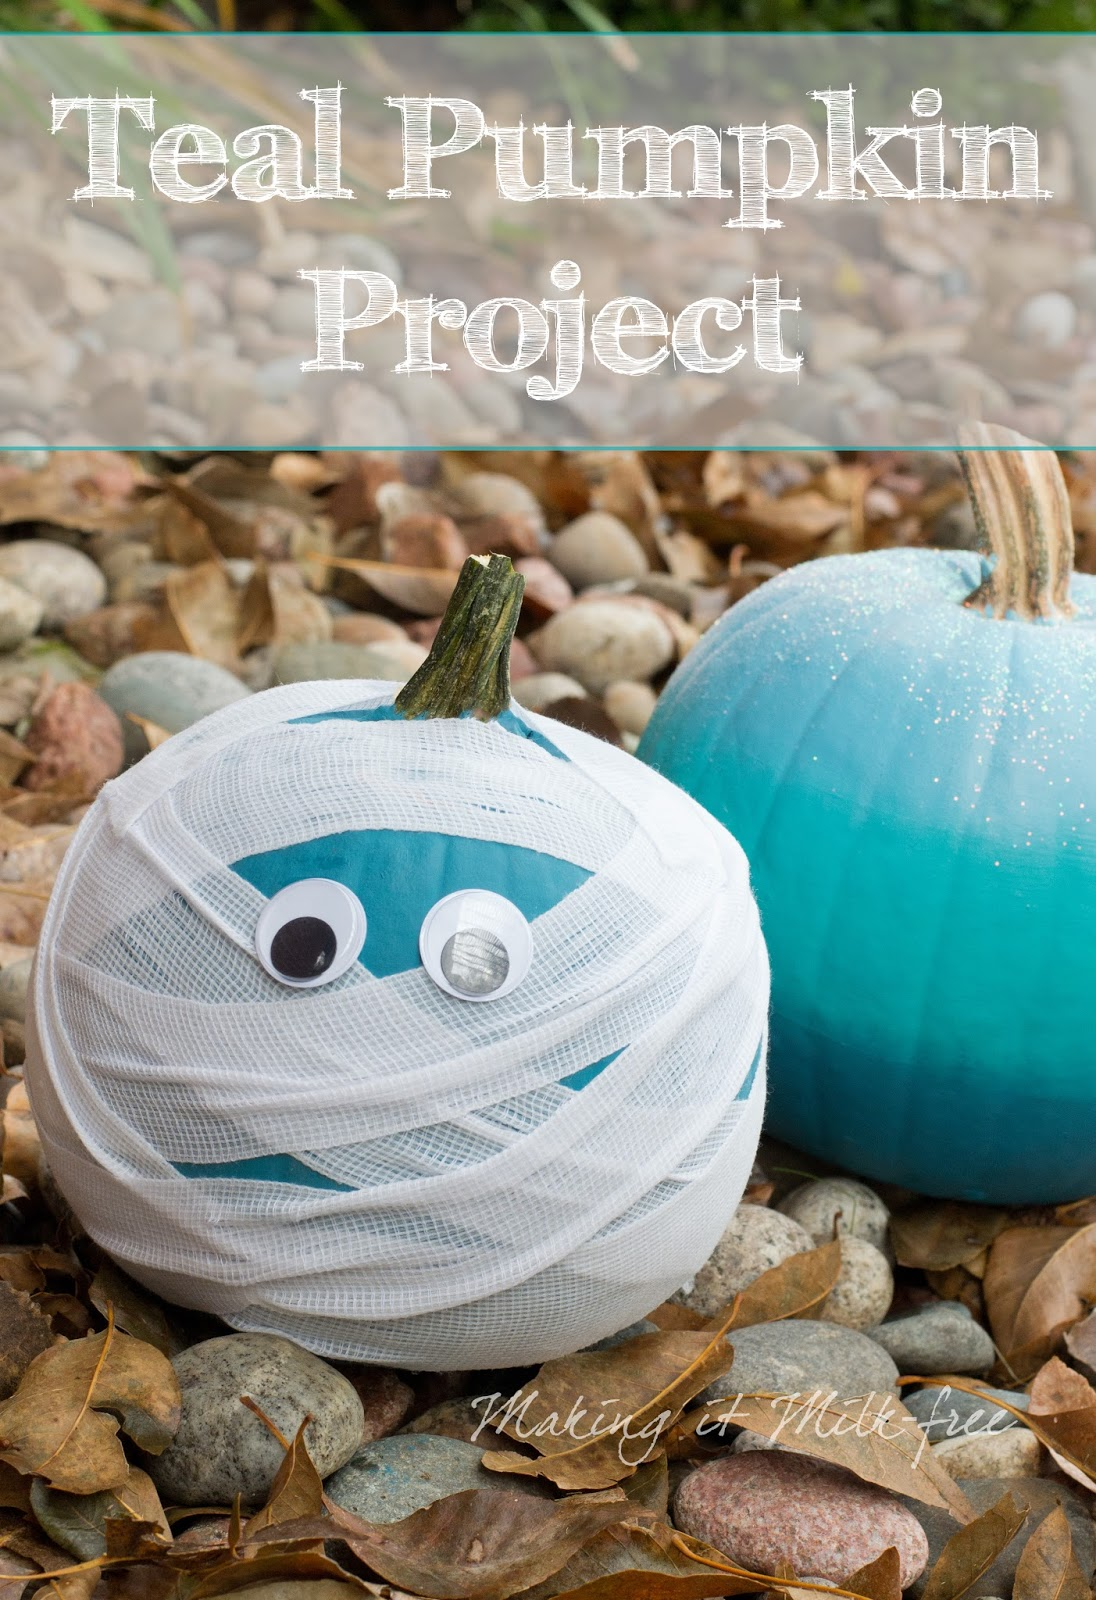 Teal Ombre Pumpkin with Glitter & Teal Mummy Pumpkin by Making it Milk-free | Teal Pumpkin Project | makingitmilkfree.com